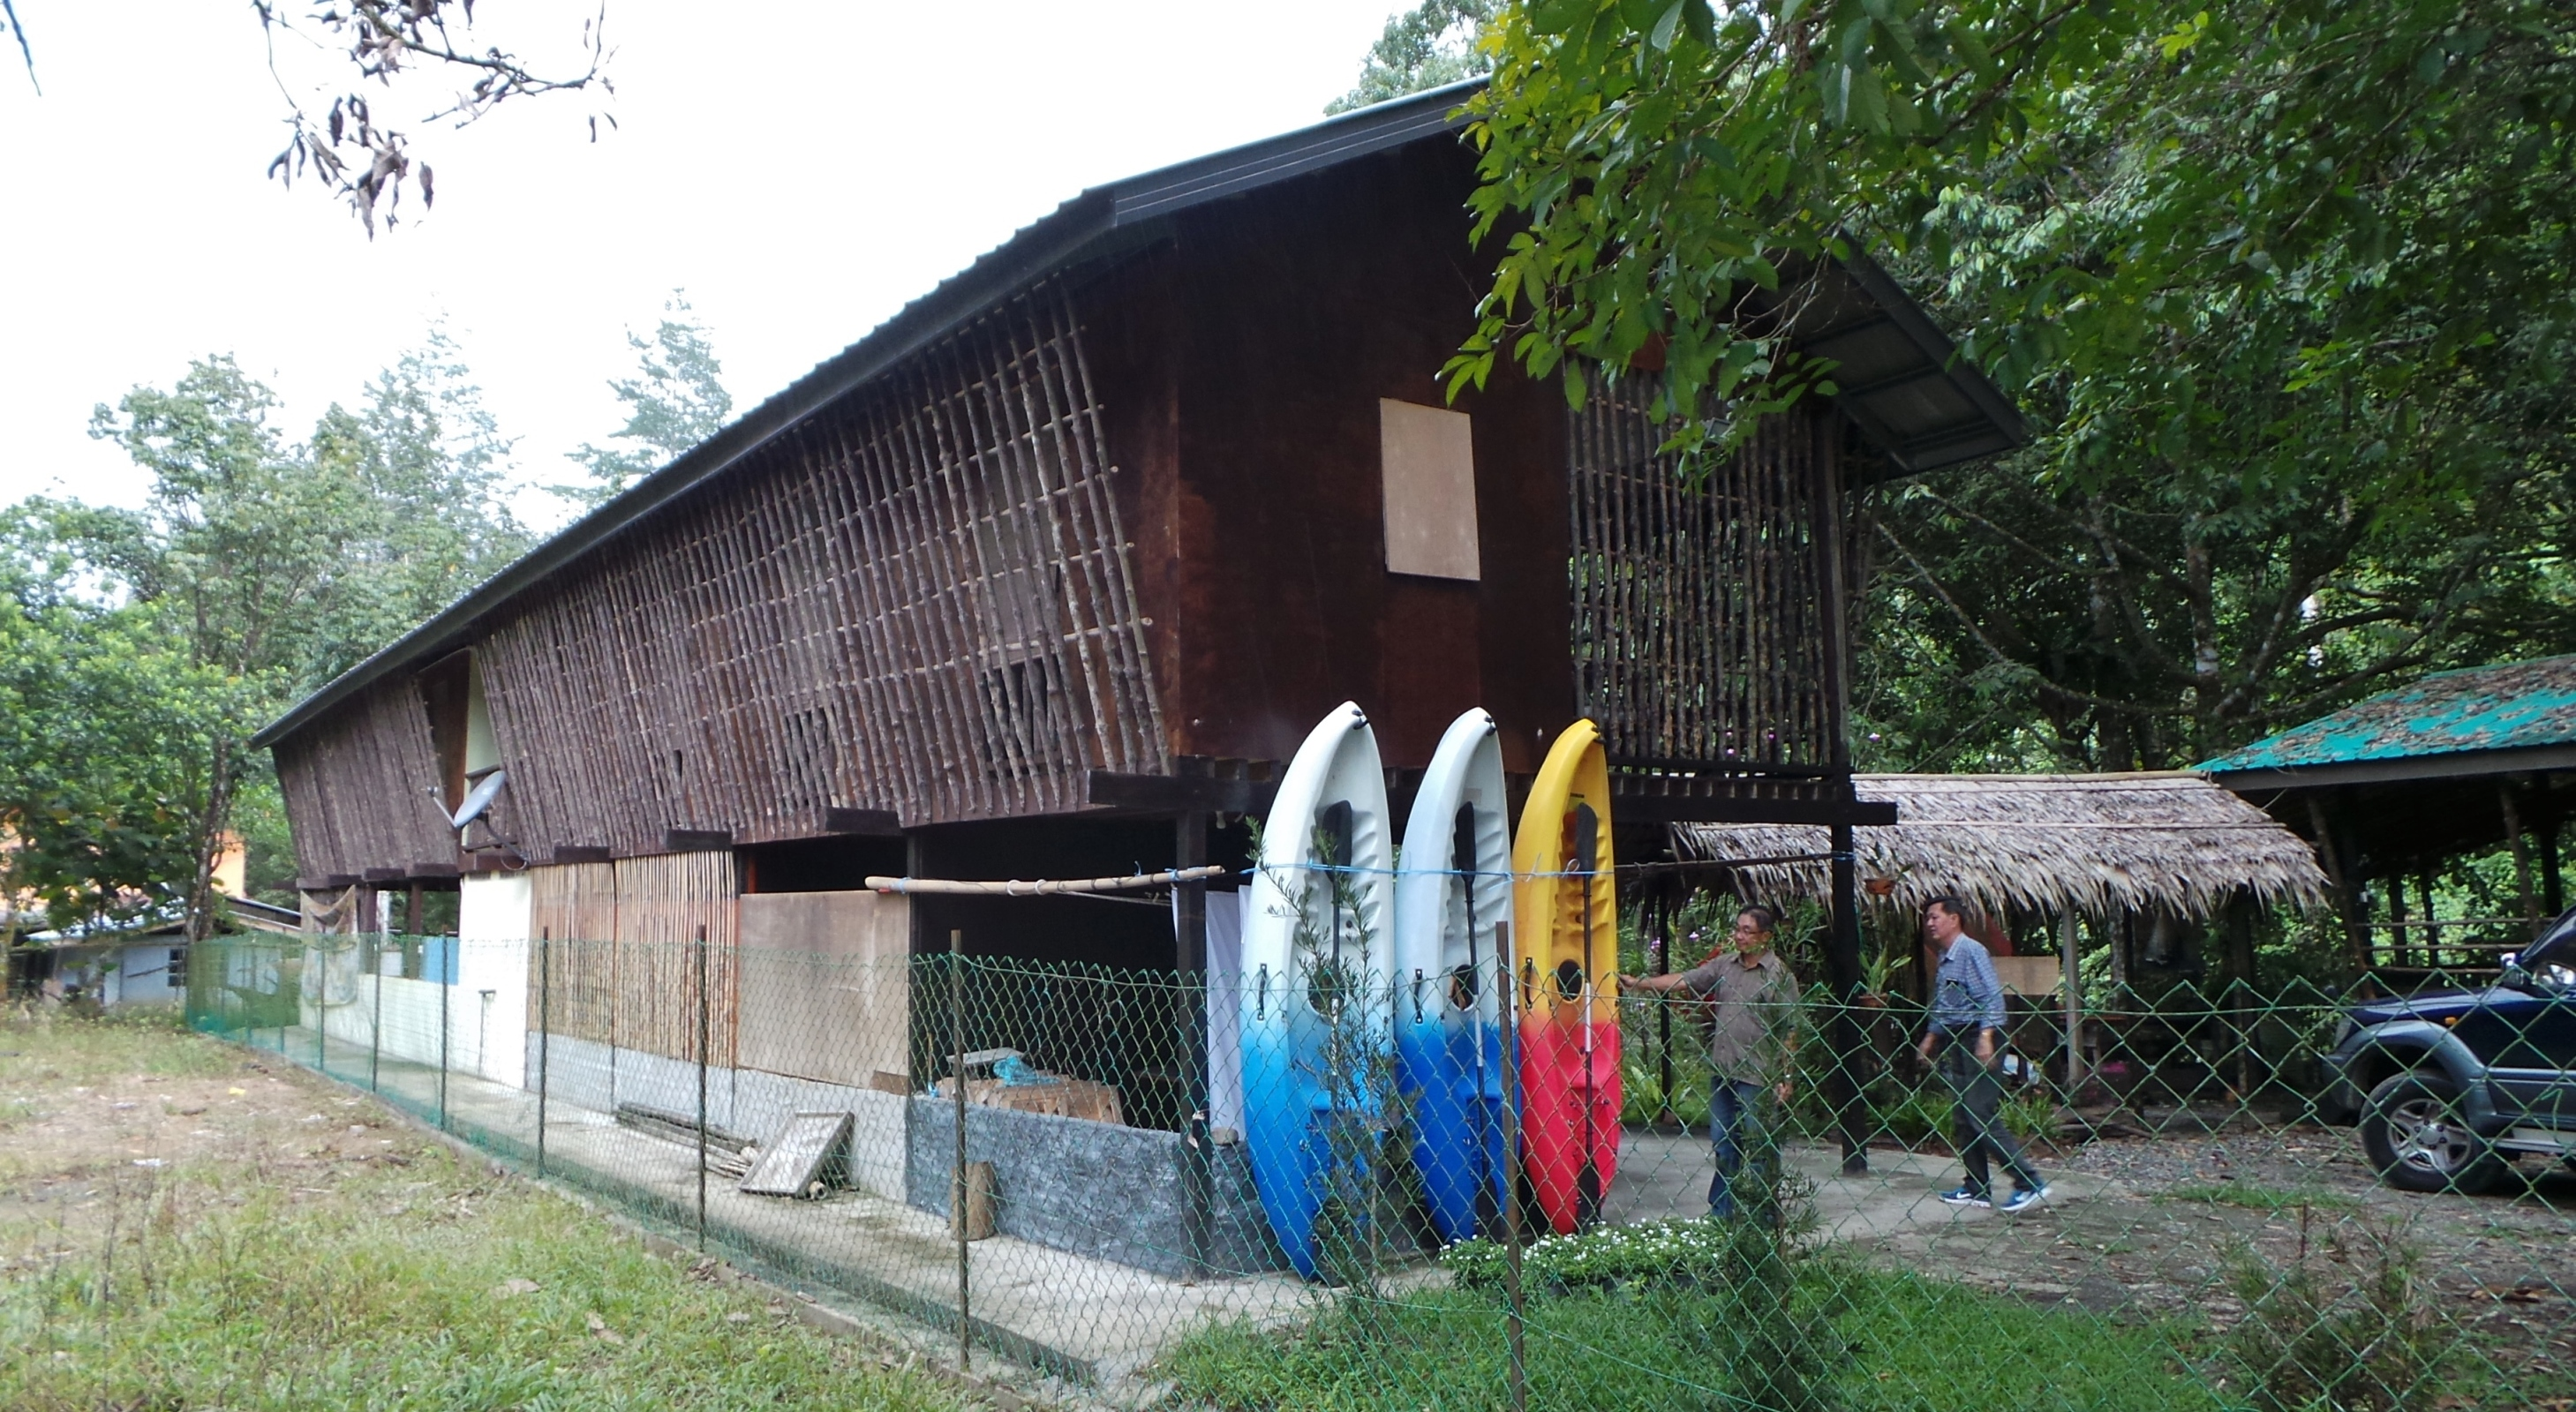 authentic village, fishing, hiking, homestay, indigenous dayak, Kadamaian River, Kadazan Dusun, Kalangadan Cafe, Mount Kinabalu, native, nature, outdoors, Tamparuli, tribal, tribe, white water rafting, kayaking, Malaysia